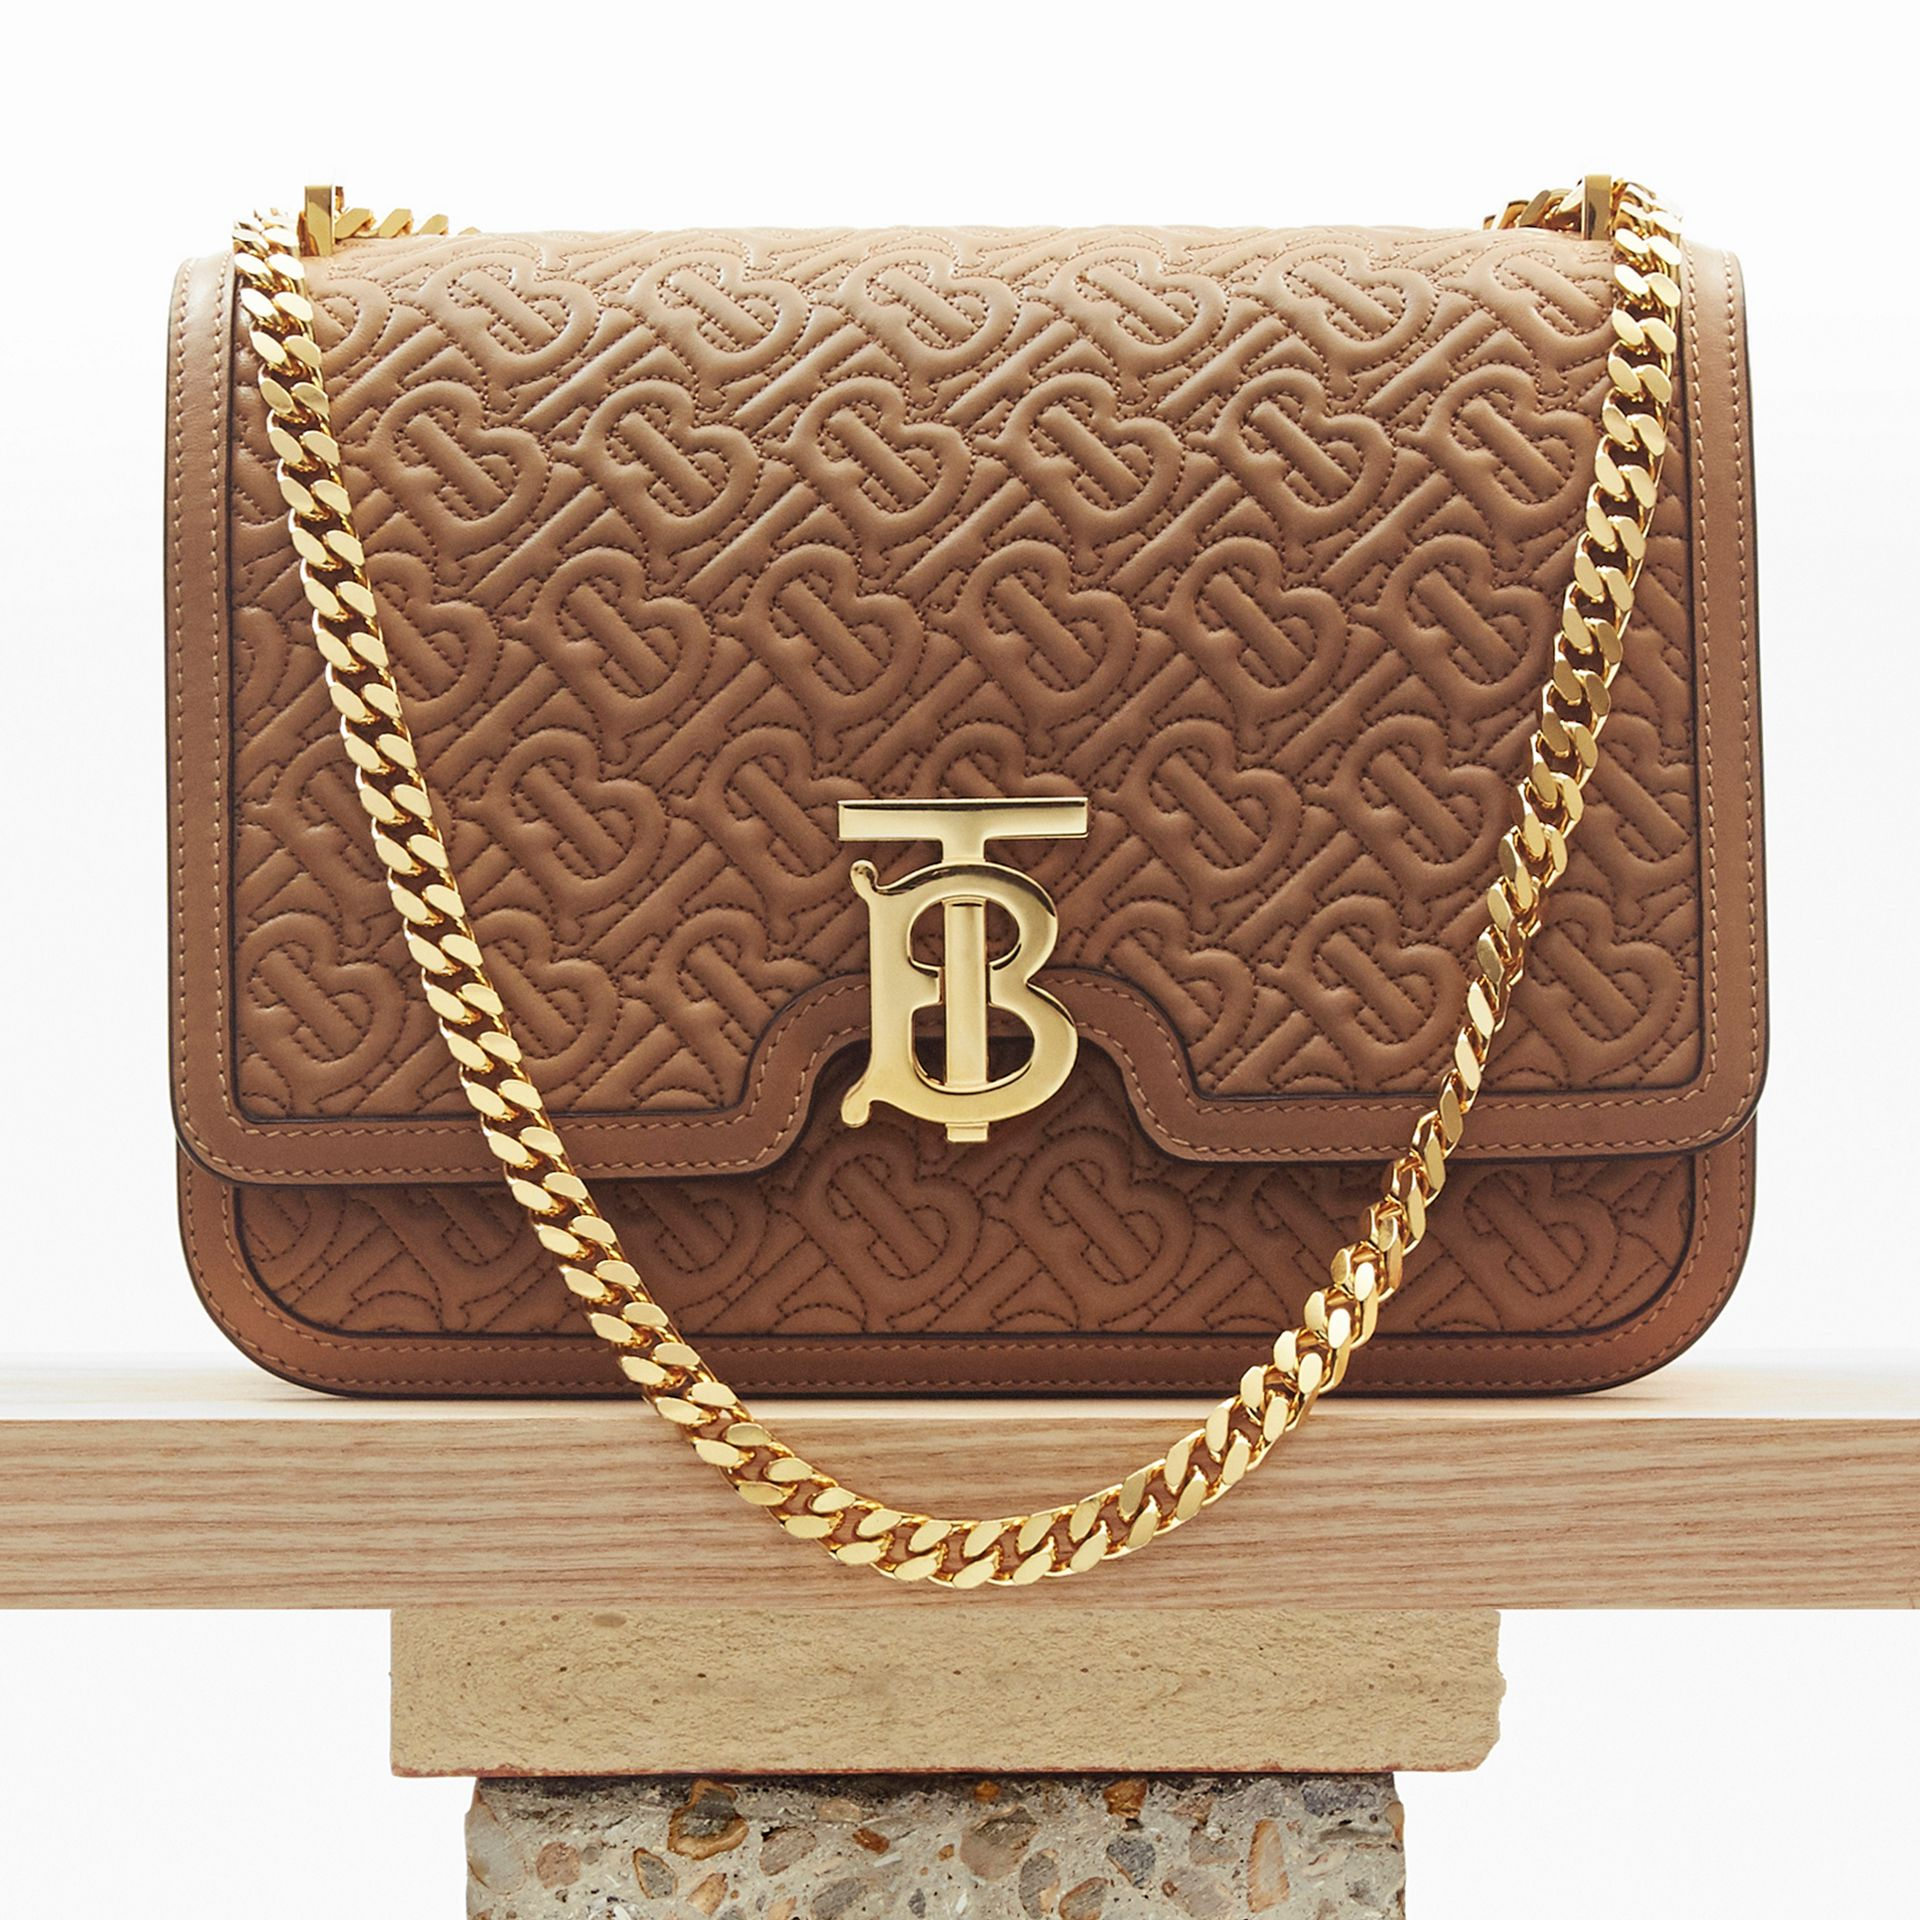 Medium Quilted Monogram Lambskin TB Bag in Honey - Women | Burberry United Kingdom - gallery image 8